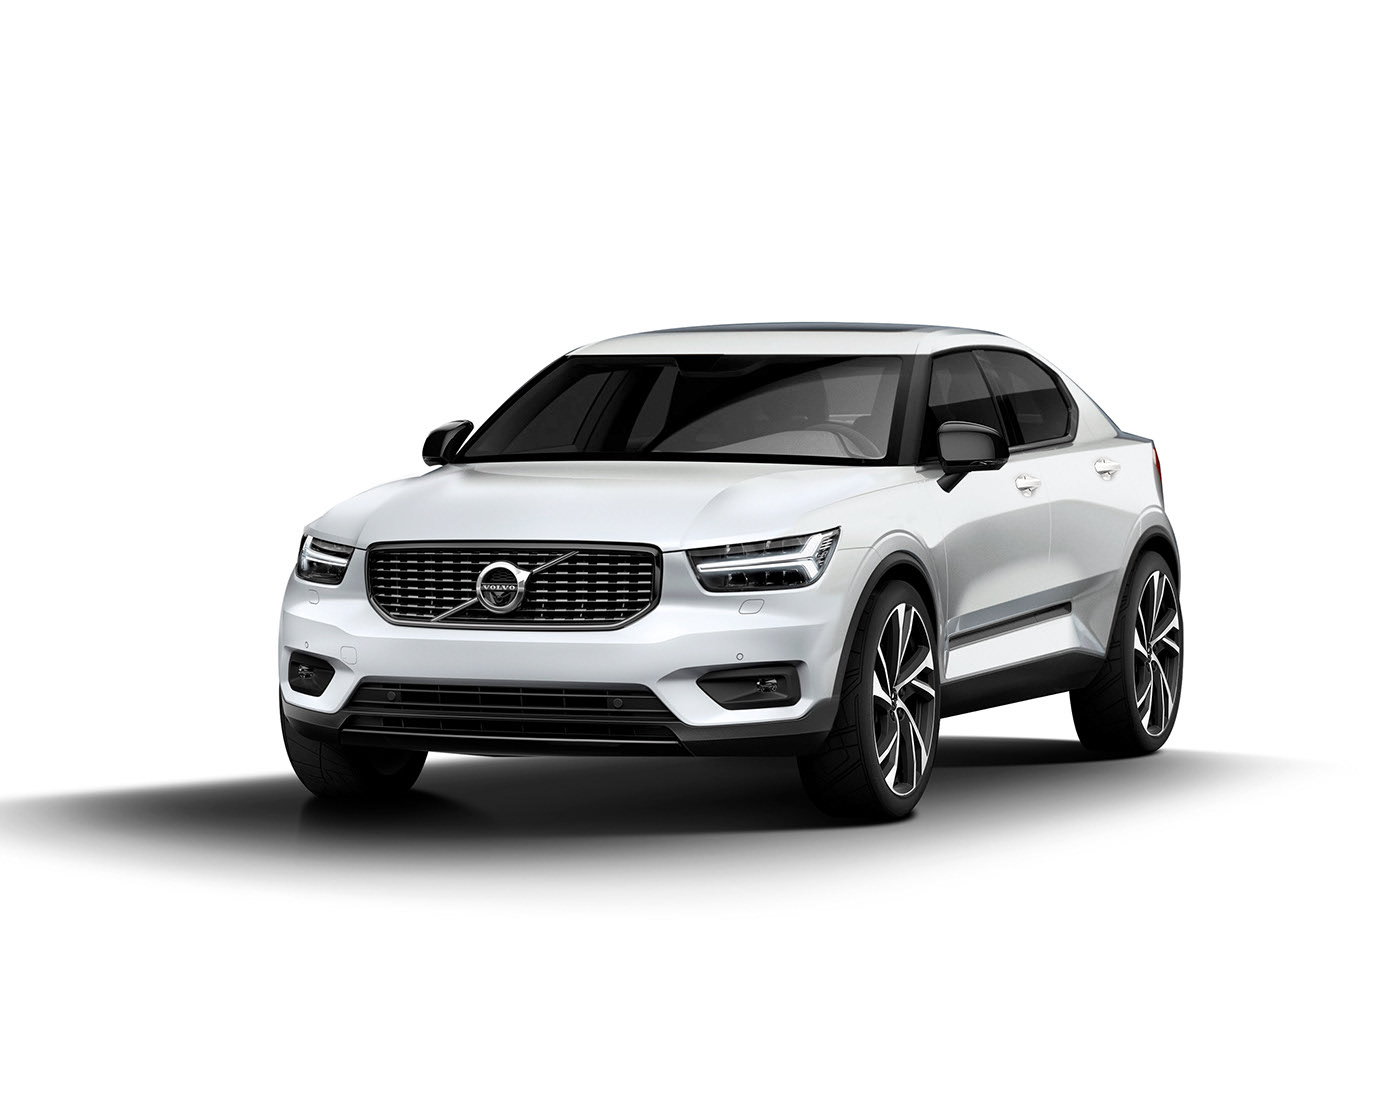 Volvo XC3 Coupe Rendered With Concept 3.3 Fastback Design, Could